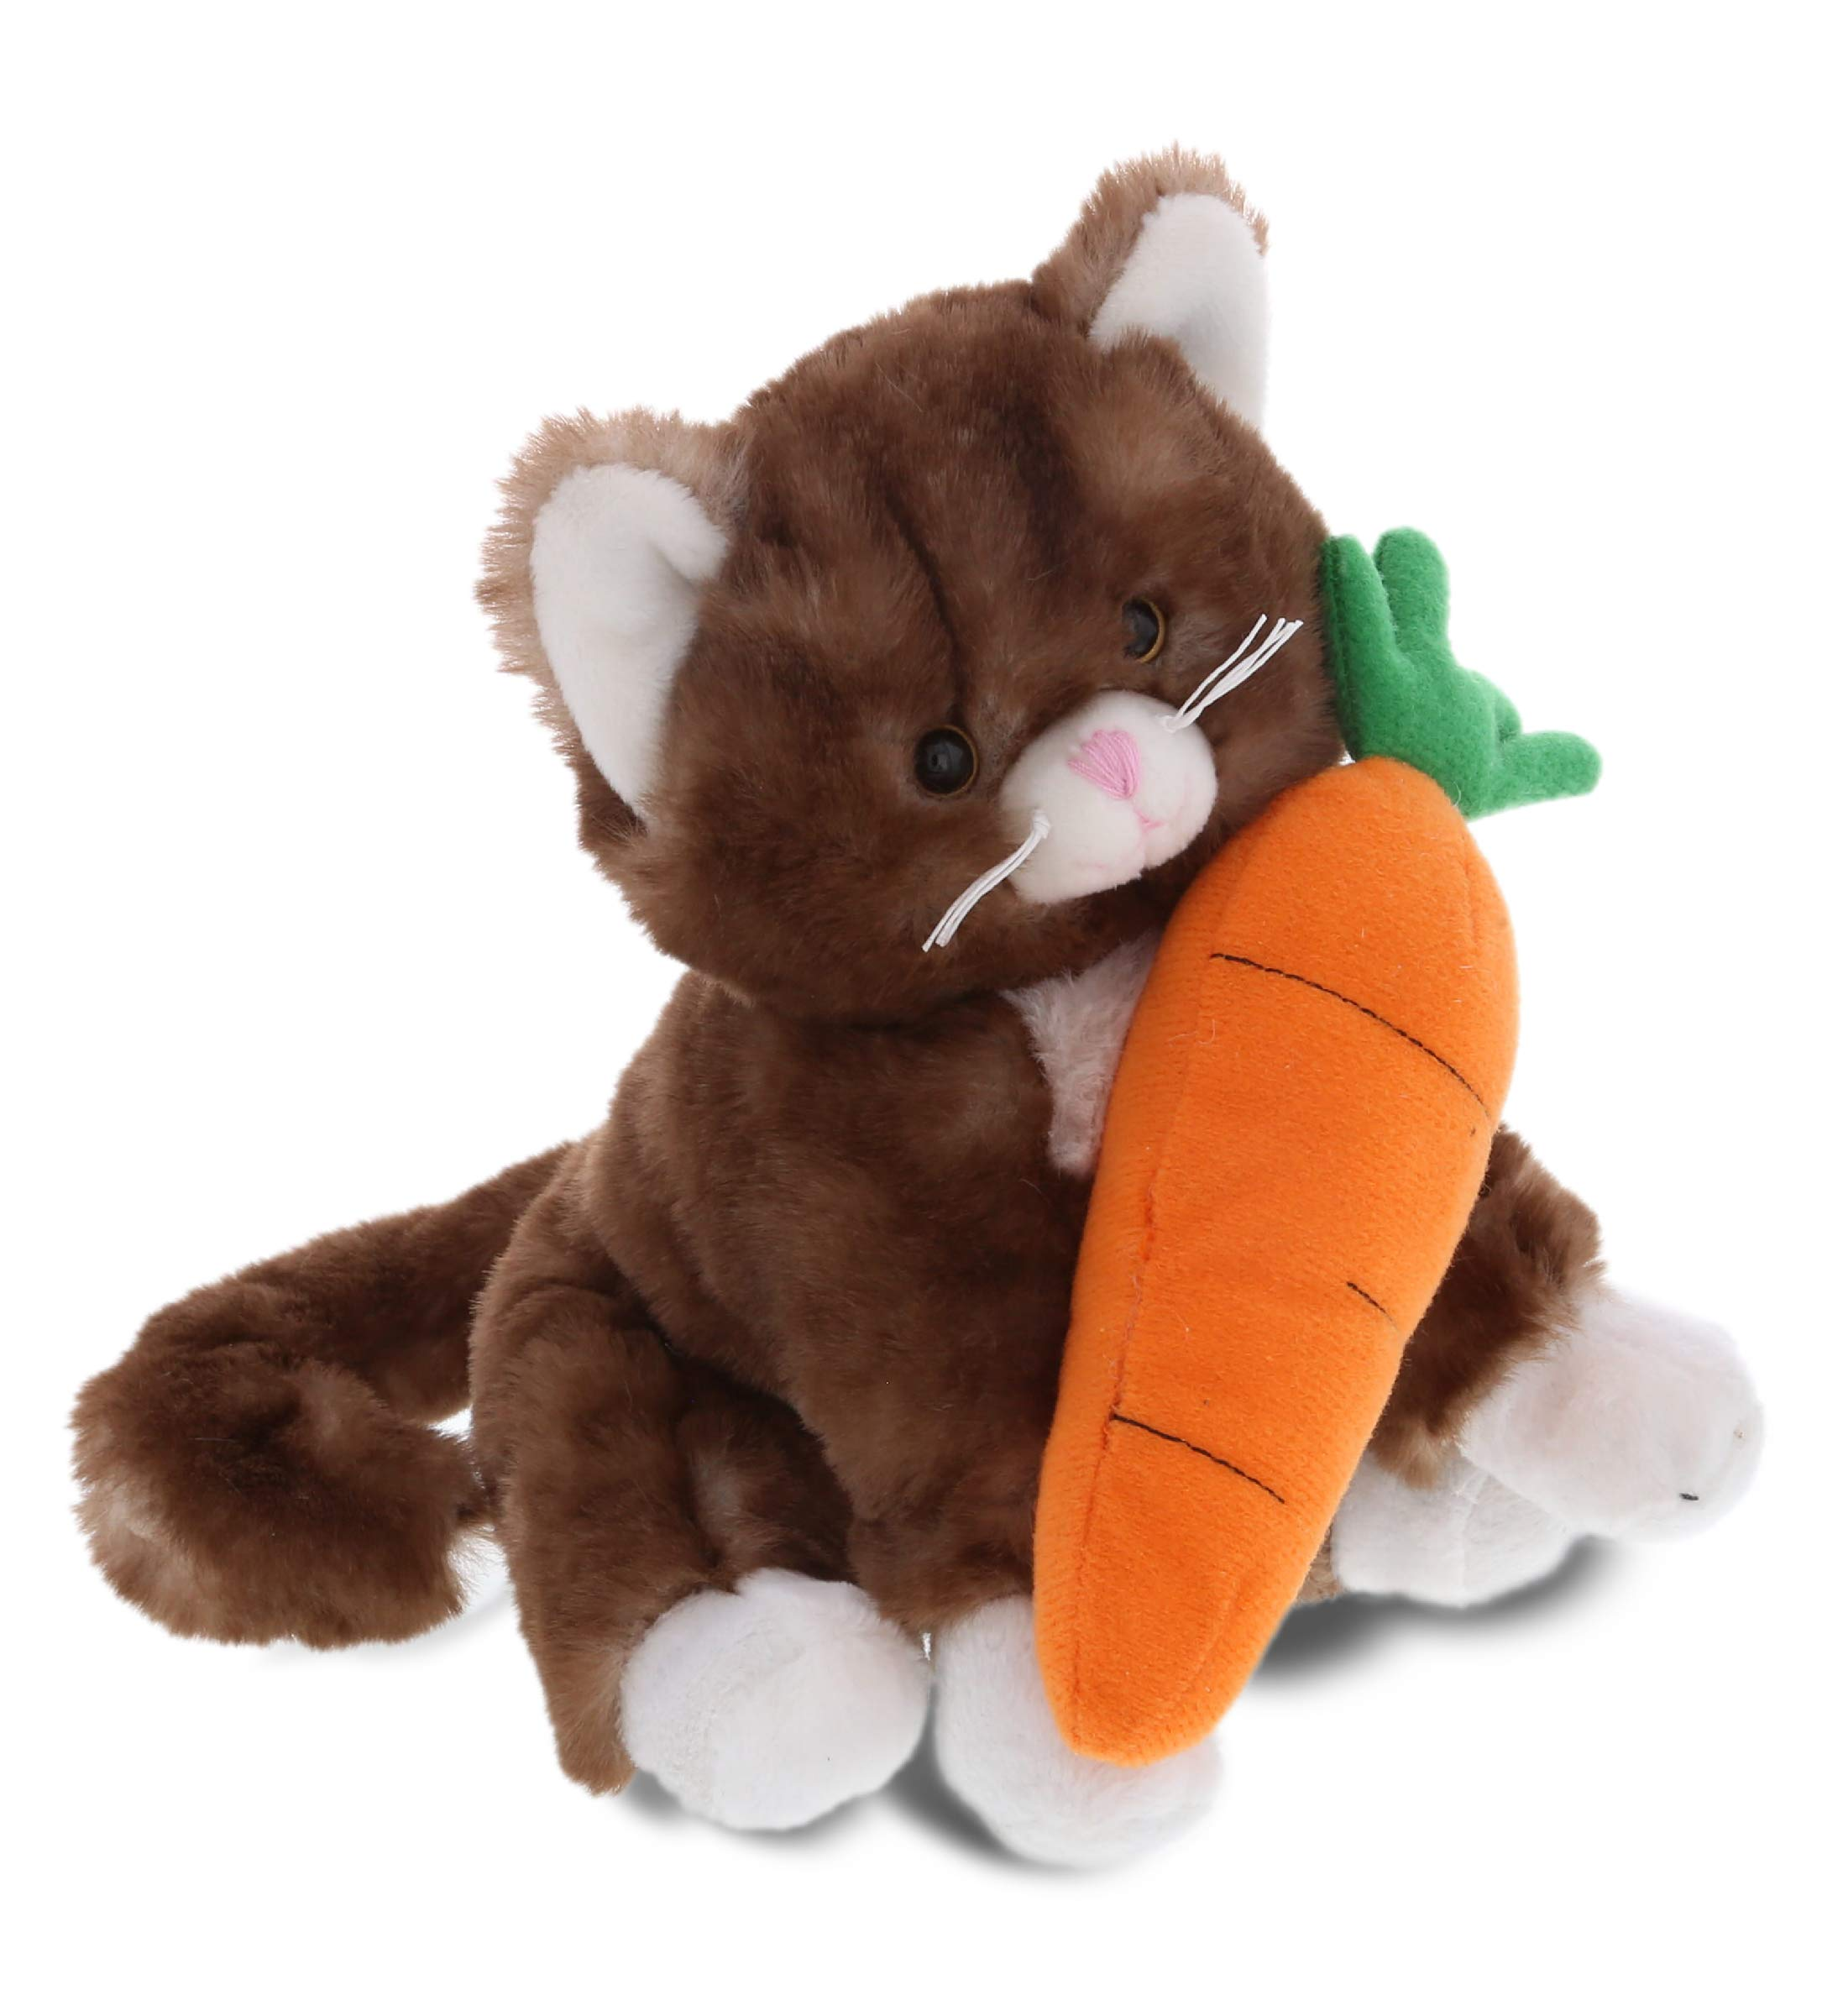 "DolliBu Happy Easter Super Soft Plush Brown Cat with Carrot - Cute Stuffed Animals with Carrot Plush Toy, Perfect Easter Holiday Surprise Gift, Spring Easter Pet Life Plush Animal - 7"" Inches"